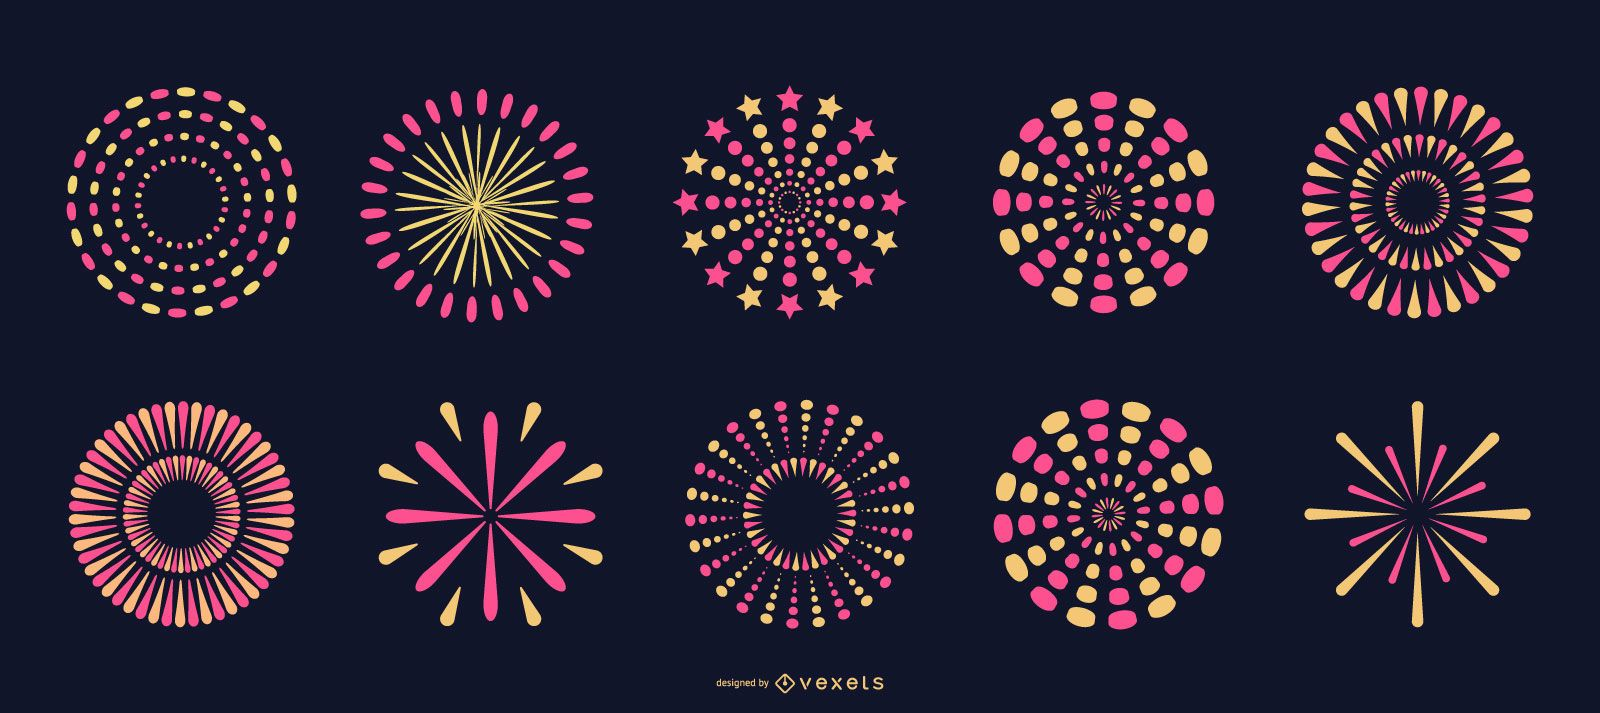 Bright pink fireworks collection